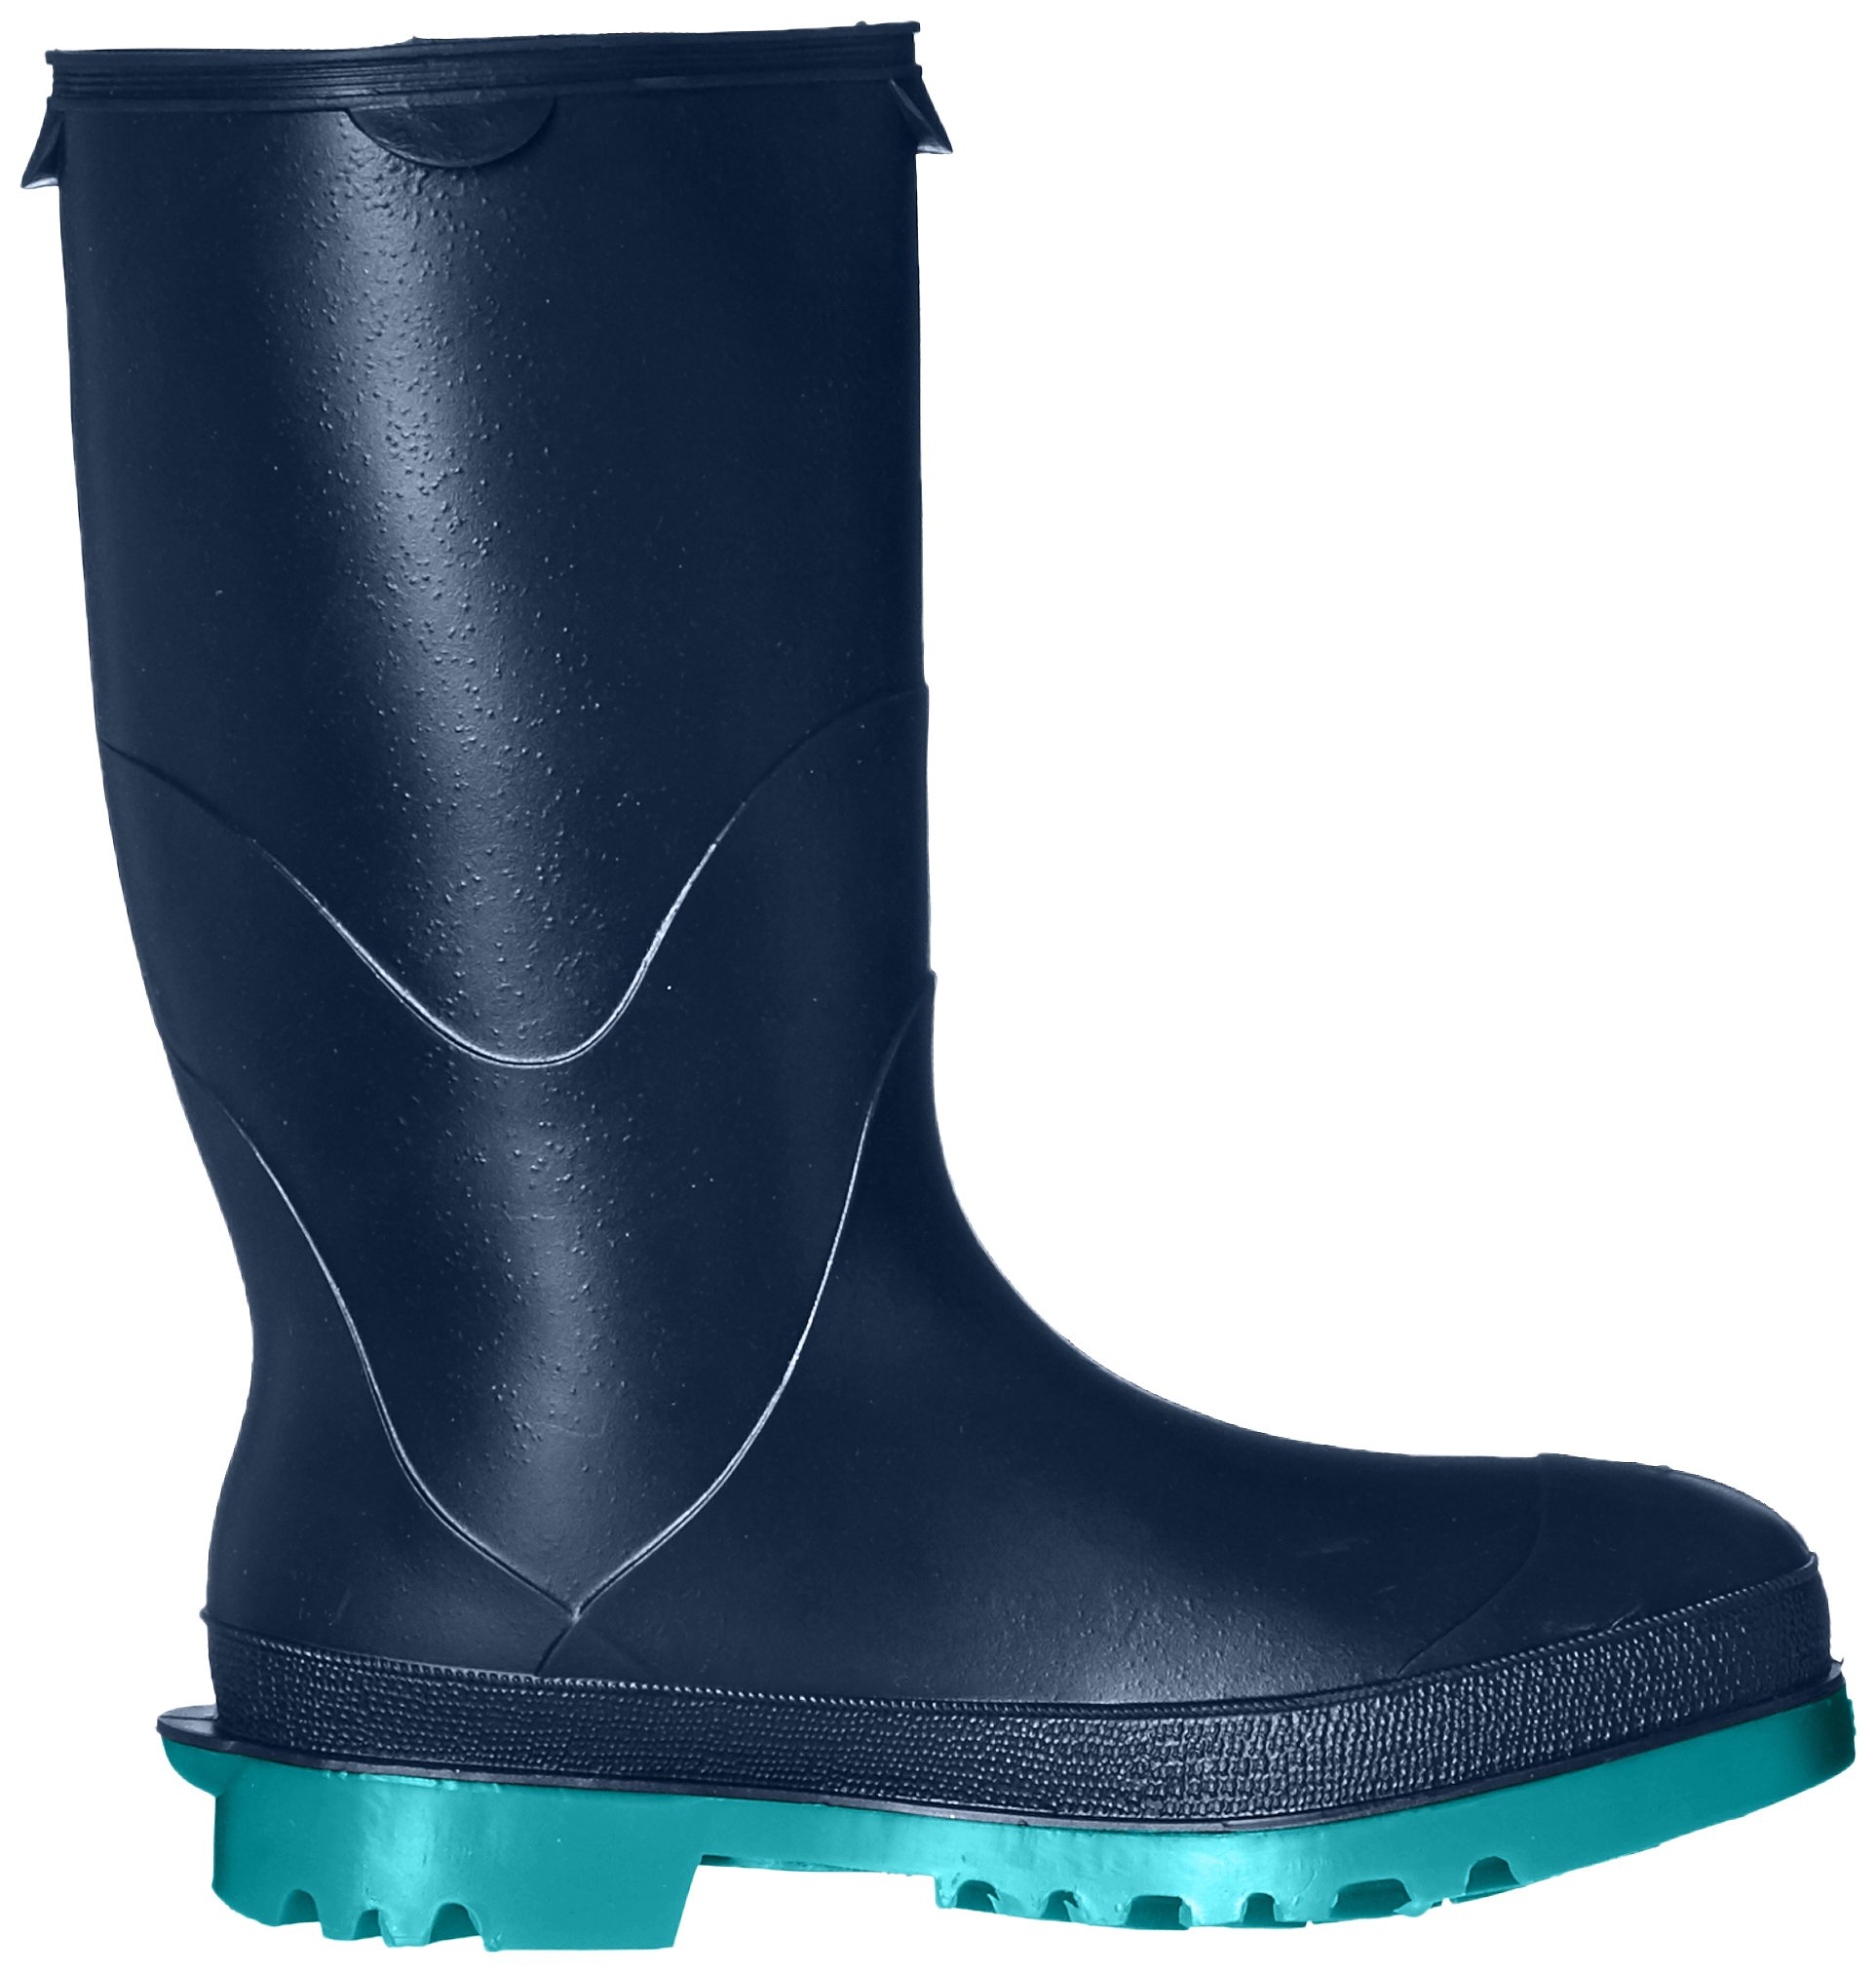 STORMTRACKS 11768.04 Youths' Boot, Size 04, Blue/Green by STORMTRACKS (Image #7)